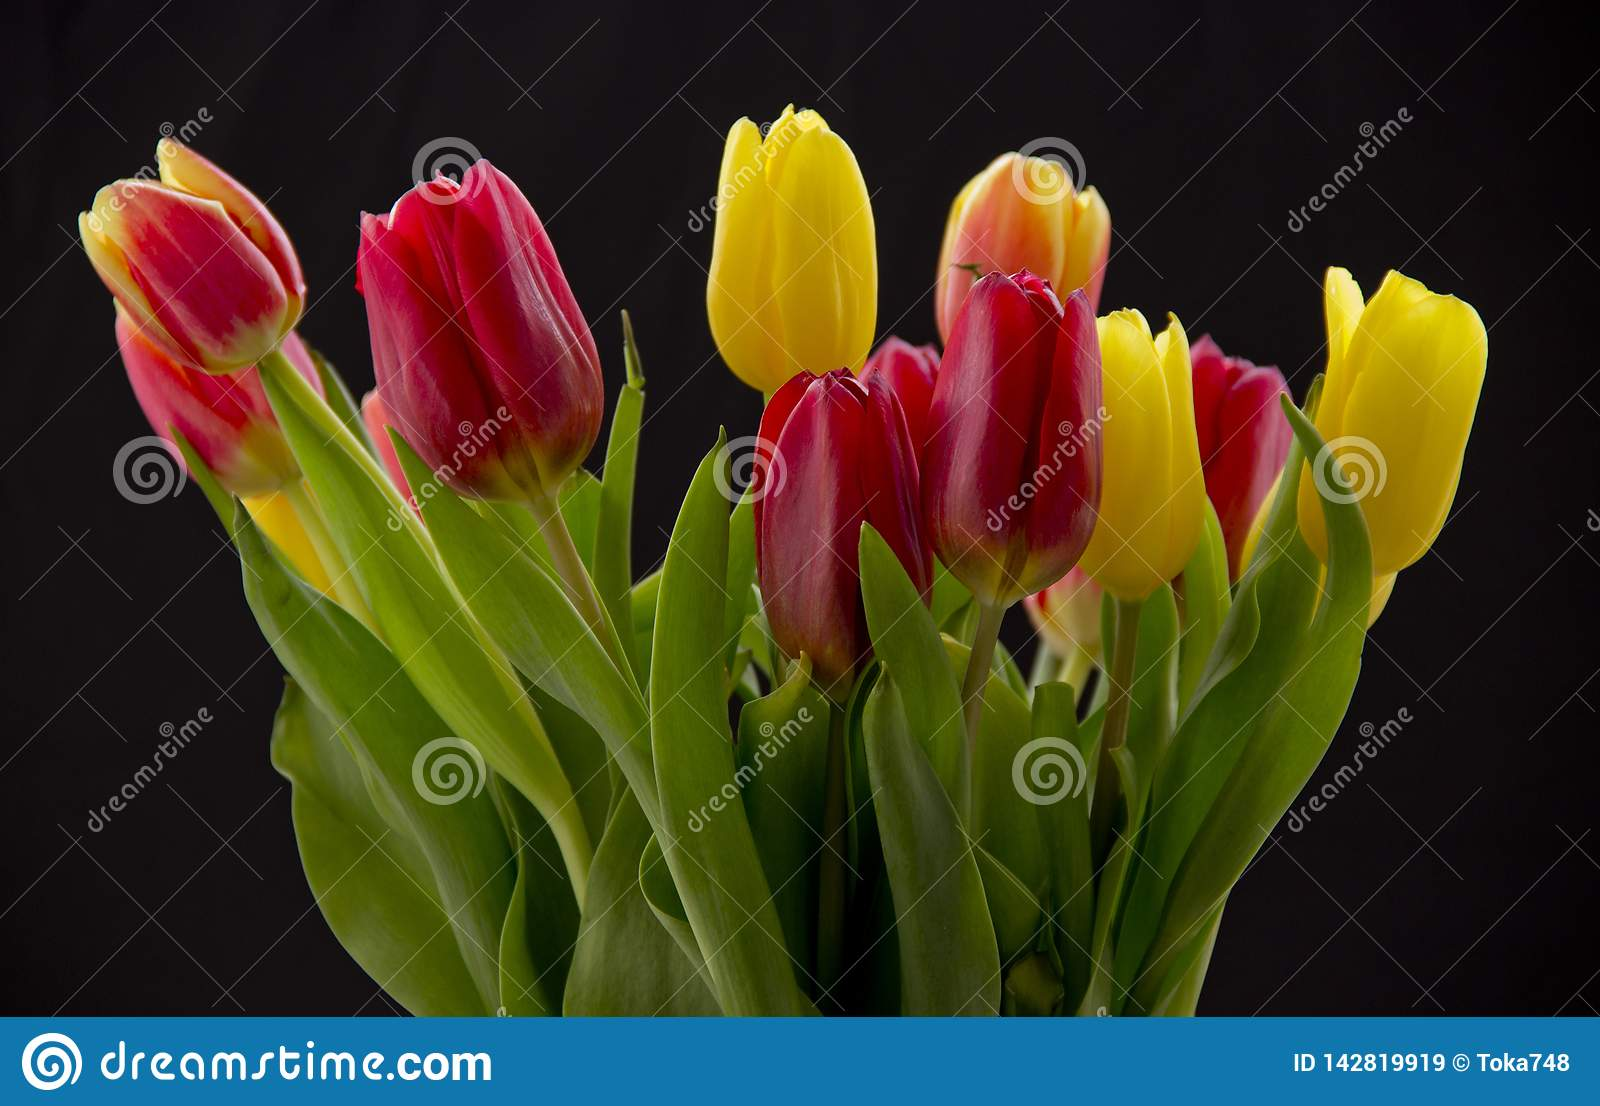 Bouquet with tulips